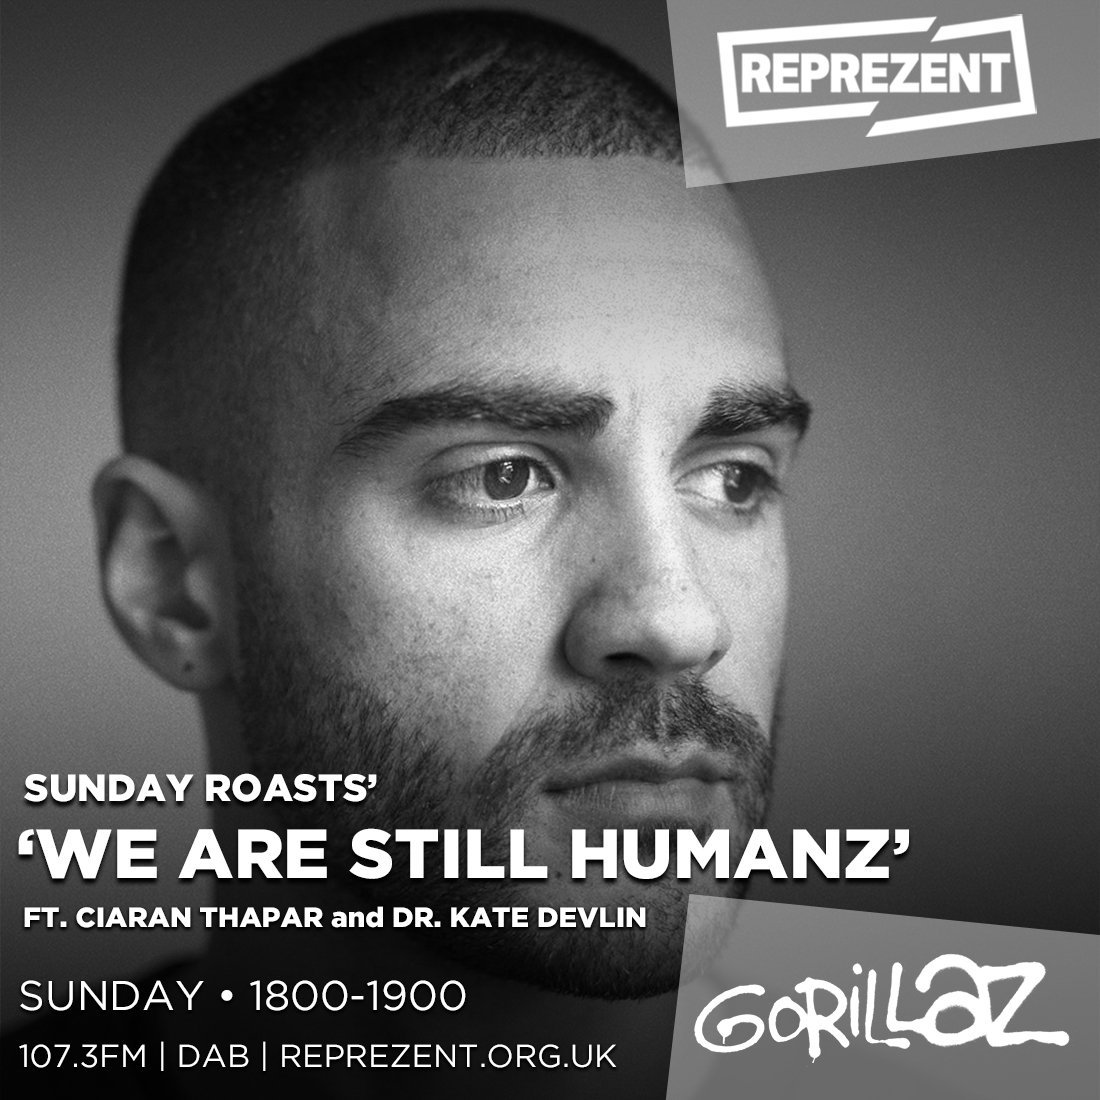 Sunday Roast's 'We are Still Humanz' ft. Ciaran Thapar & Dr. Kate Devlin